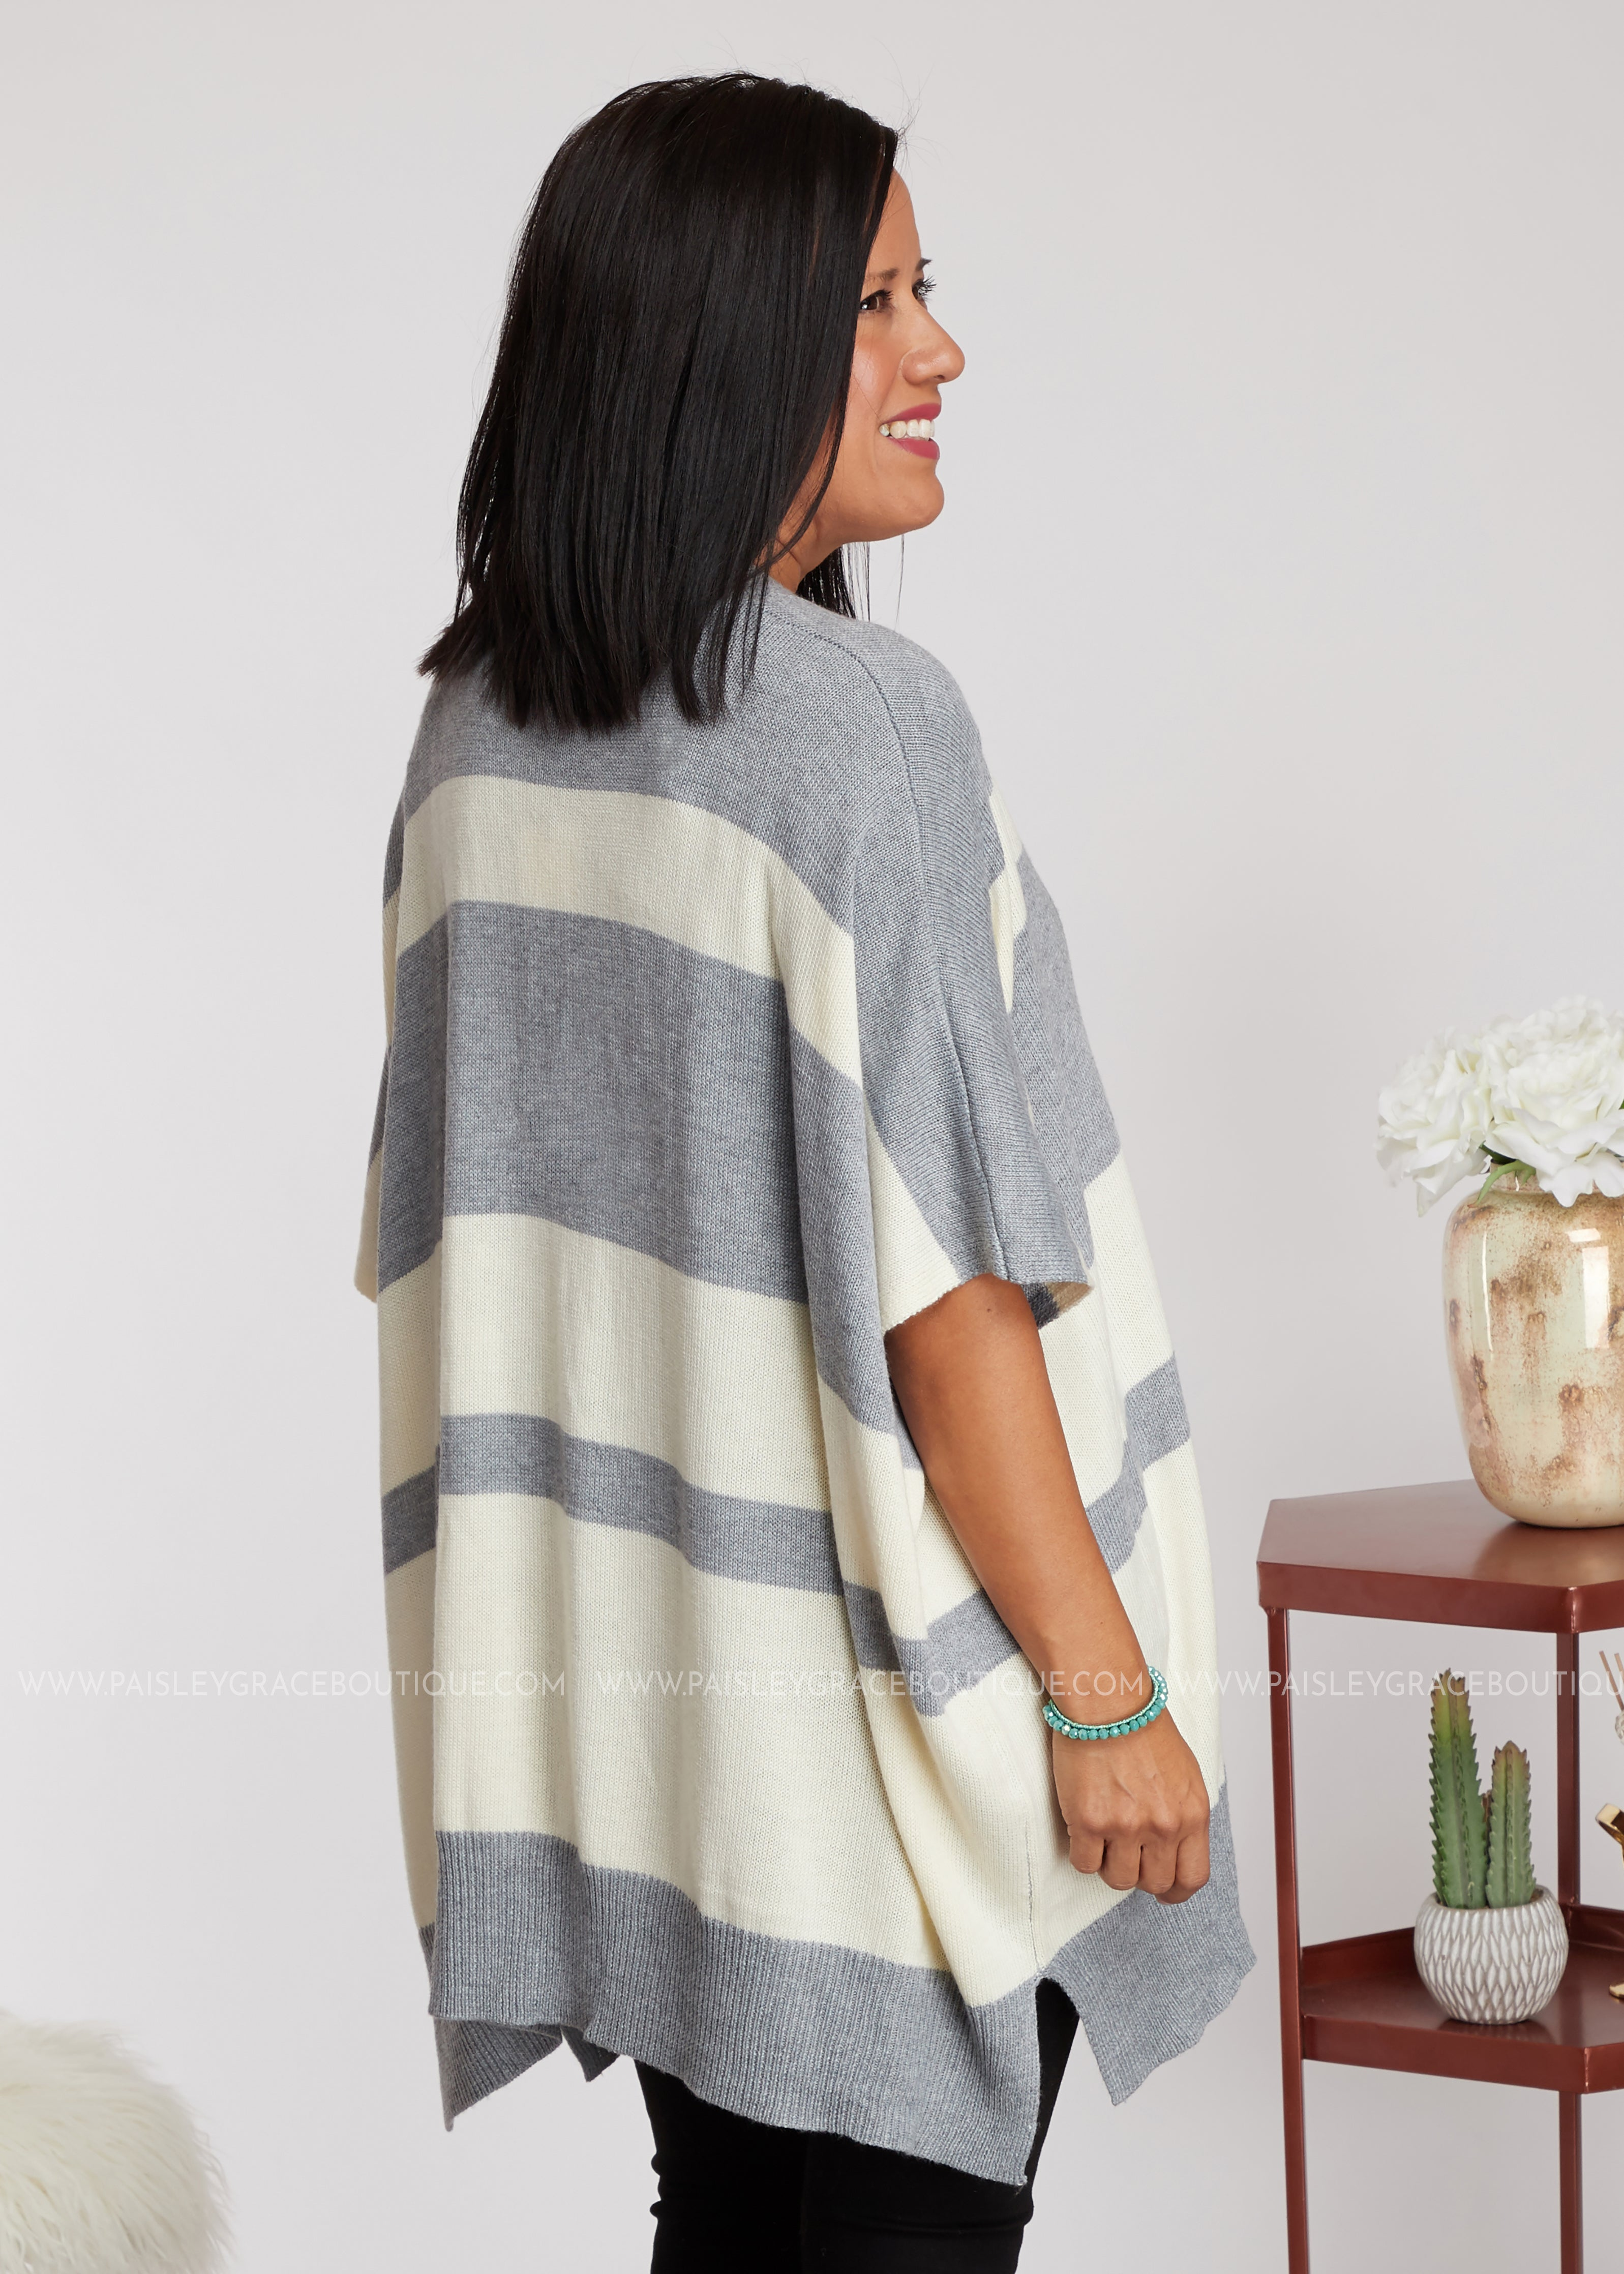 Lost In The Moment Kimono- GREY - FINAL SALE